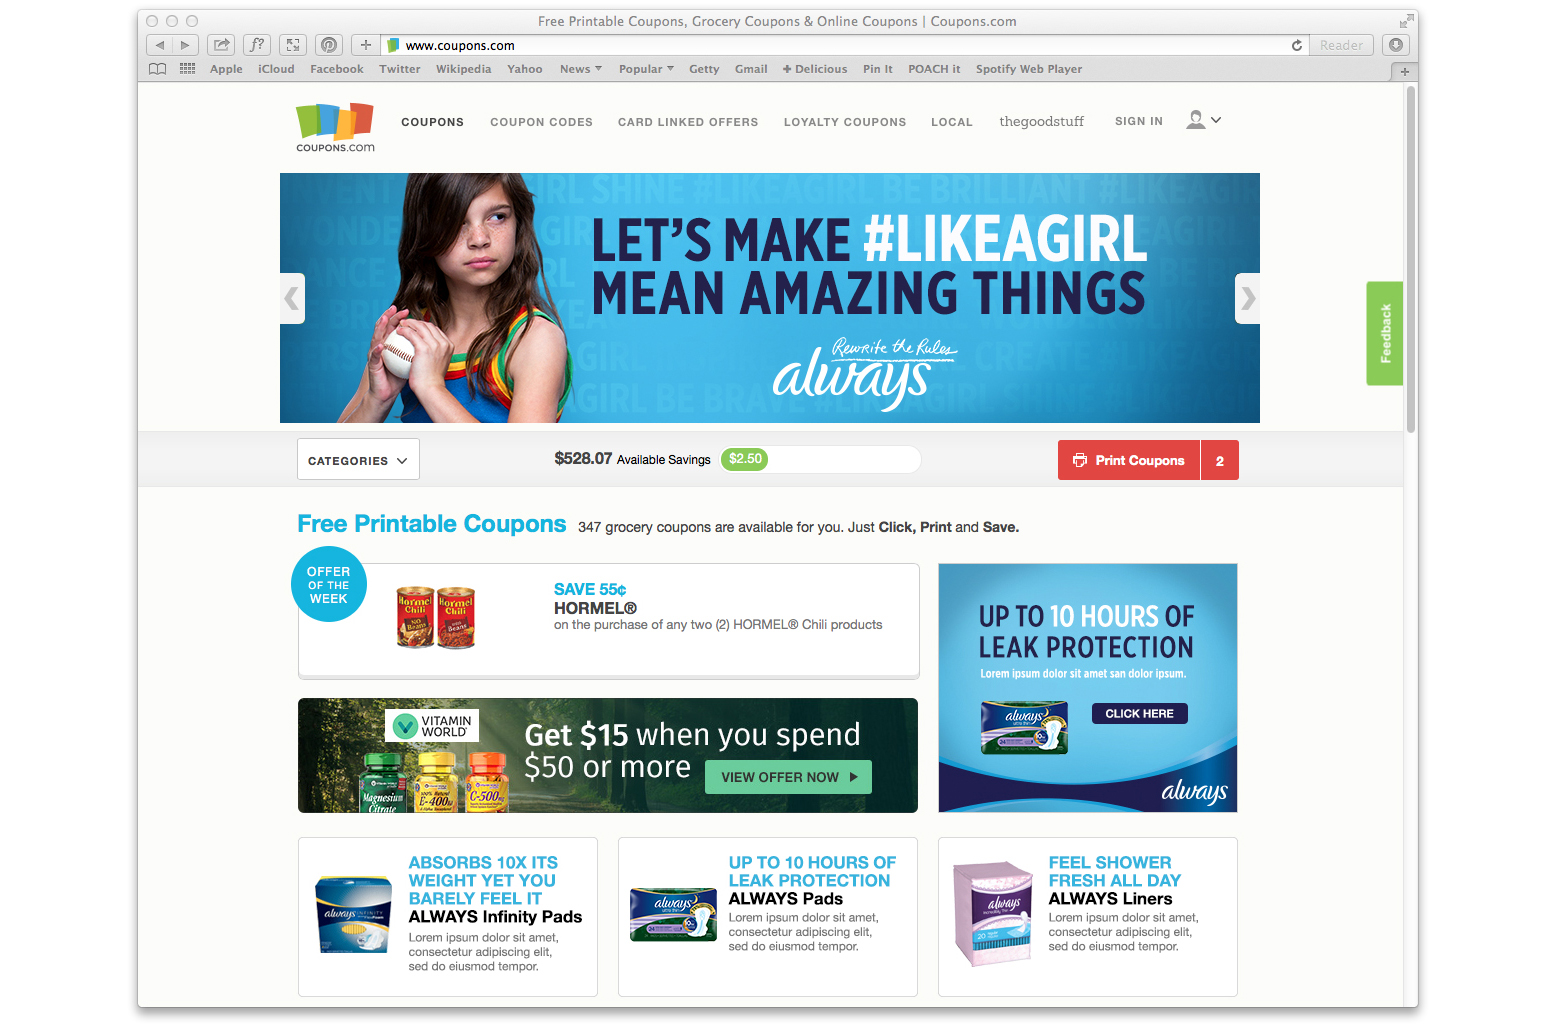 Coupons.com Takeover - Homepage